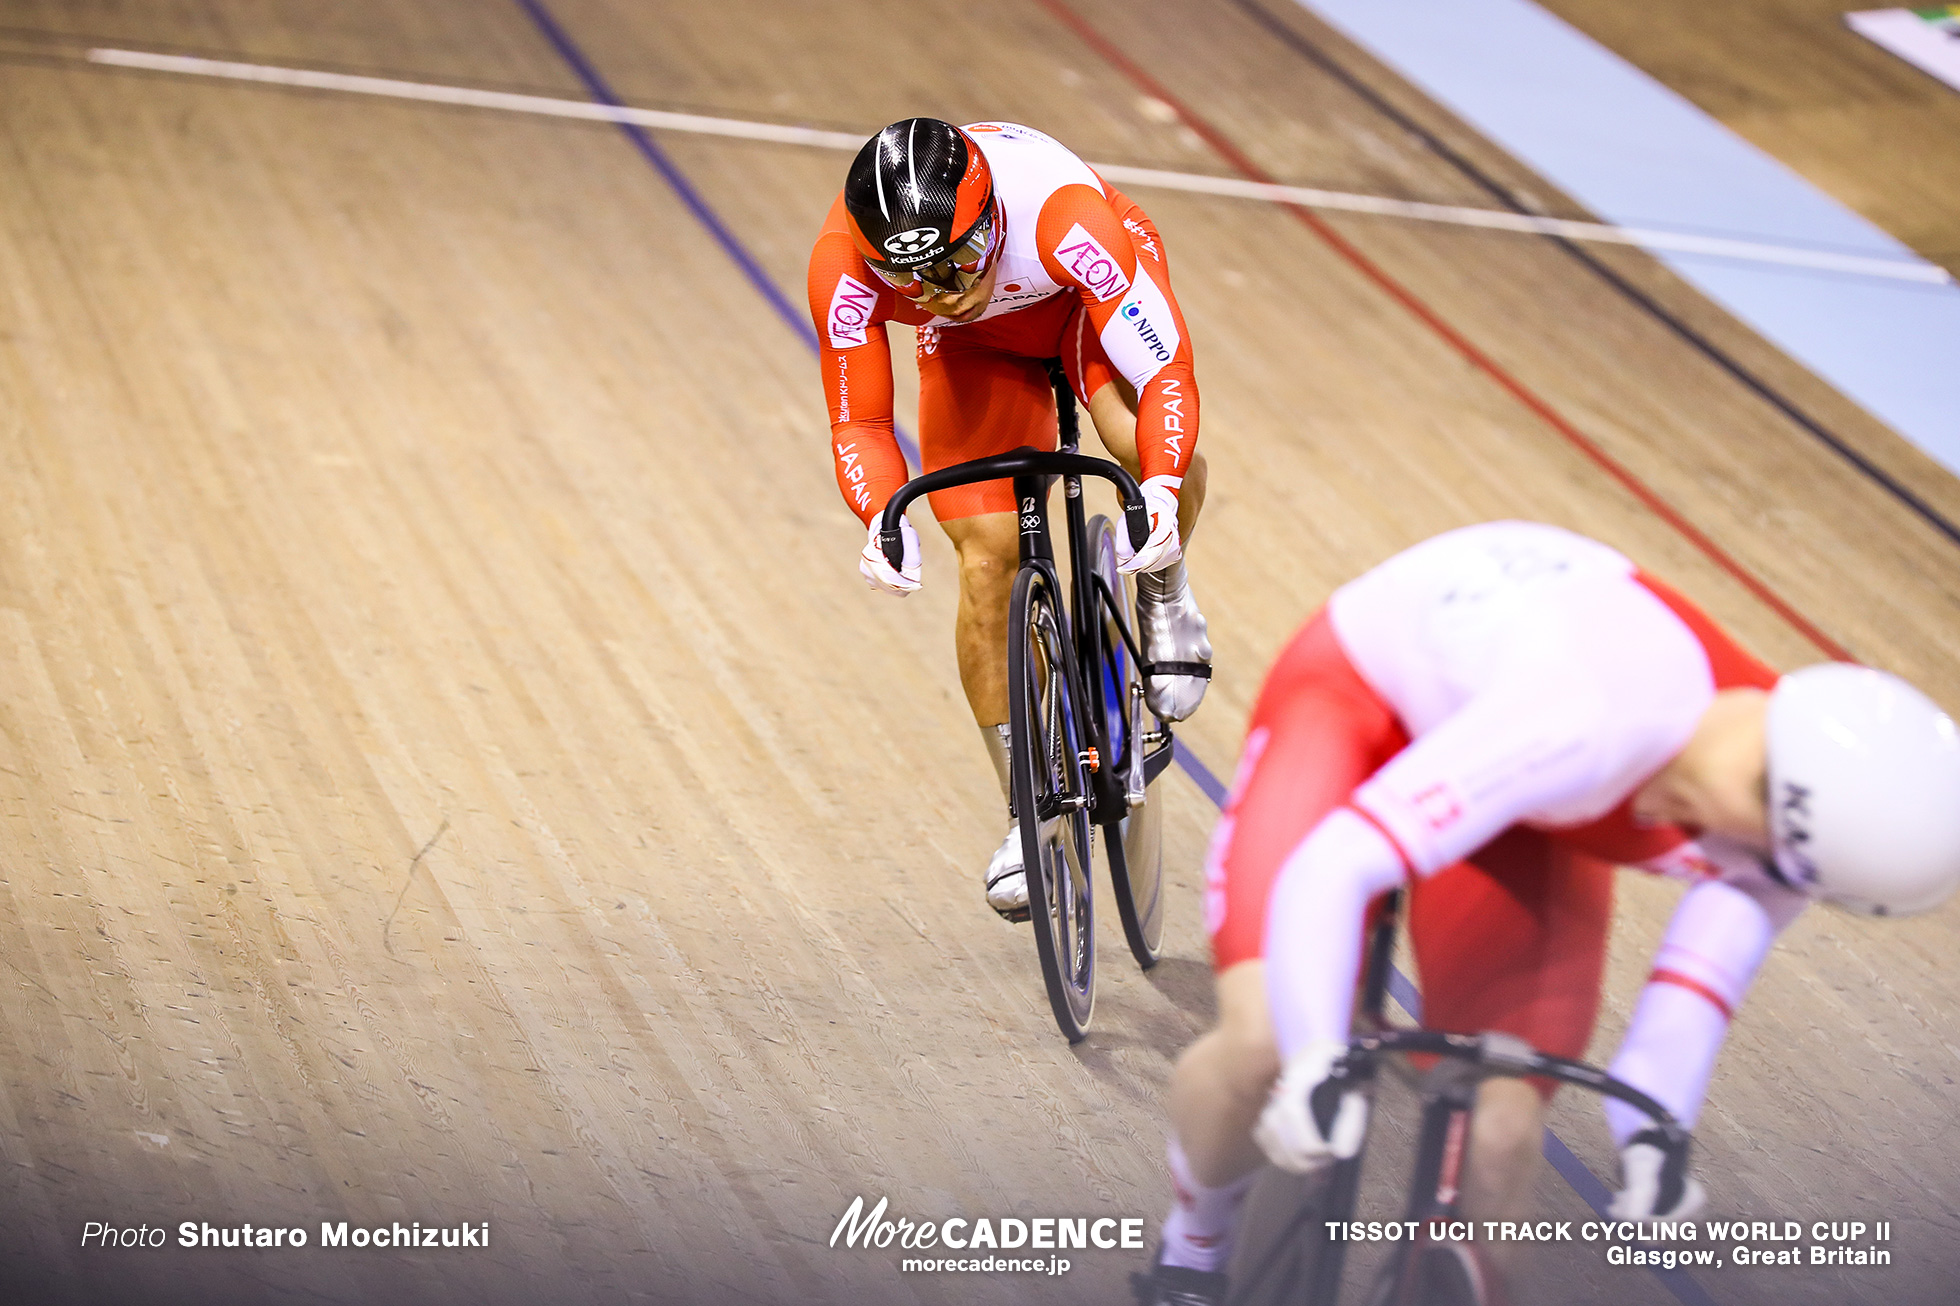 Final / Men's Sprint / TISSOT UCI TRACK CYCLING WORLD CUP II, Glasgow, Great Britain